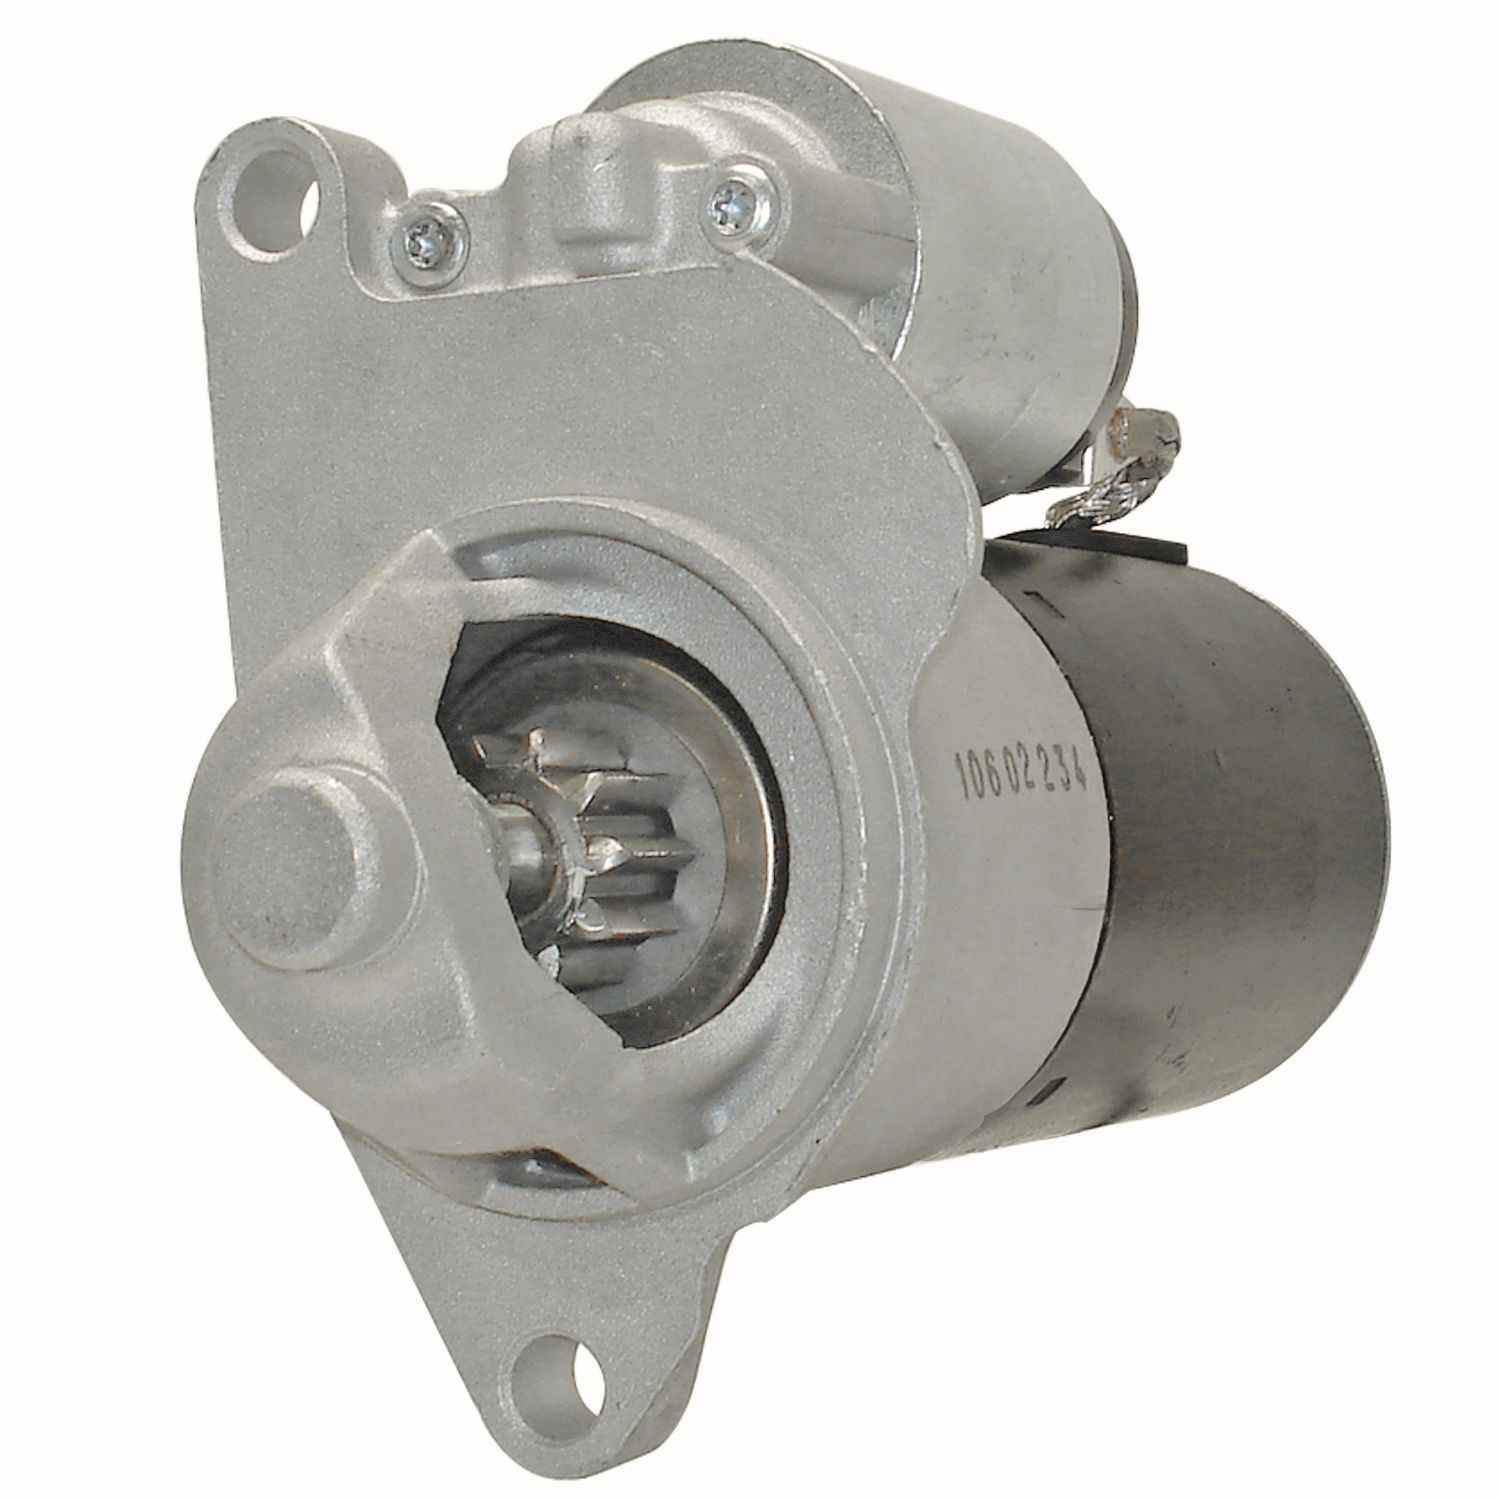 ACDELCO GOLD/PROFESSIONAL - Reman Starter Motor - DCC 336-1813A